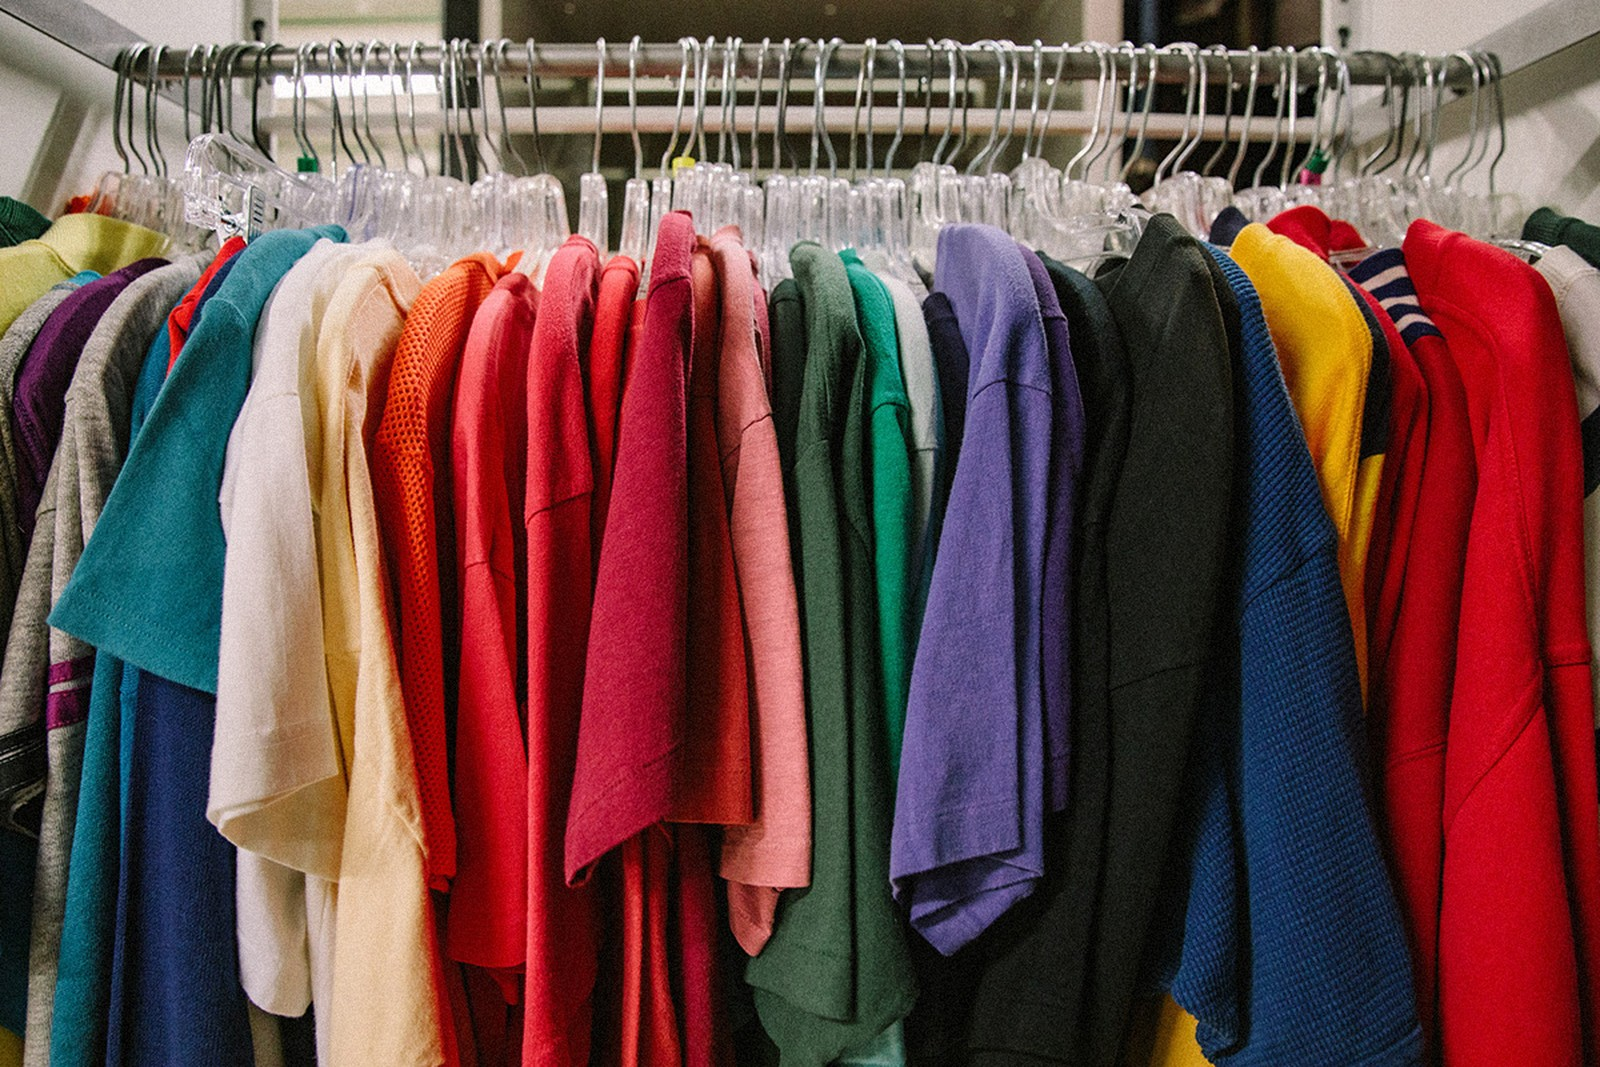 Are You Going to Buy Used Clothes? Look out for This!